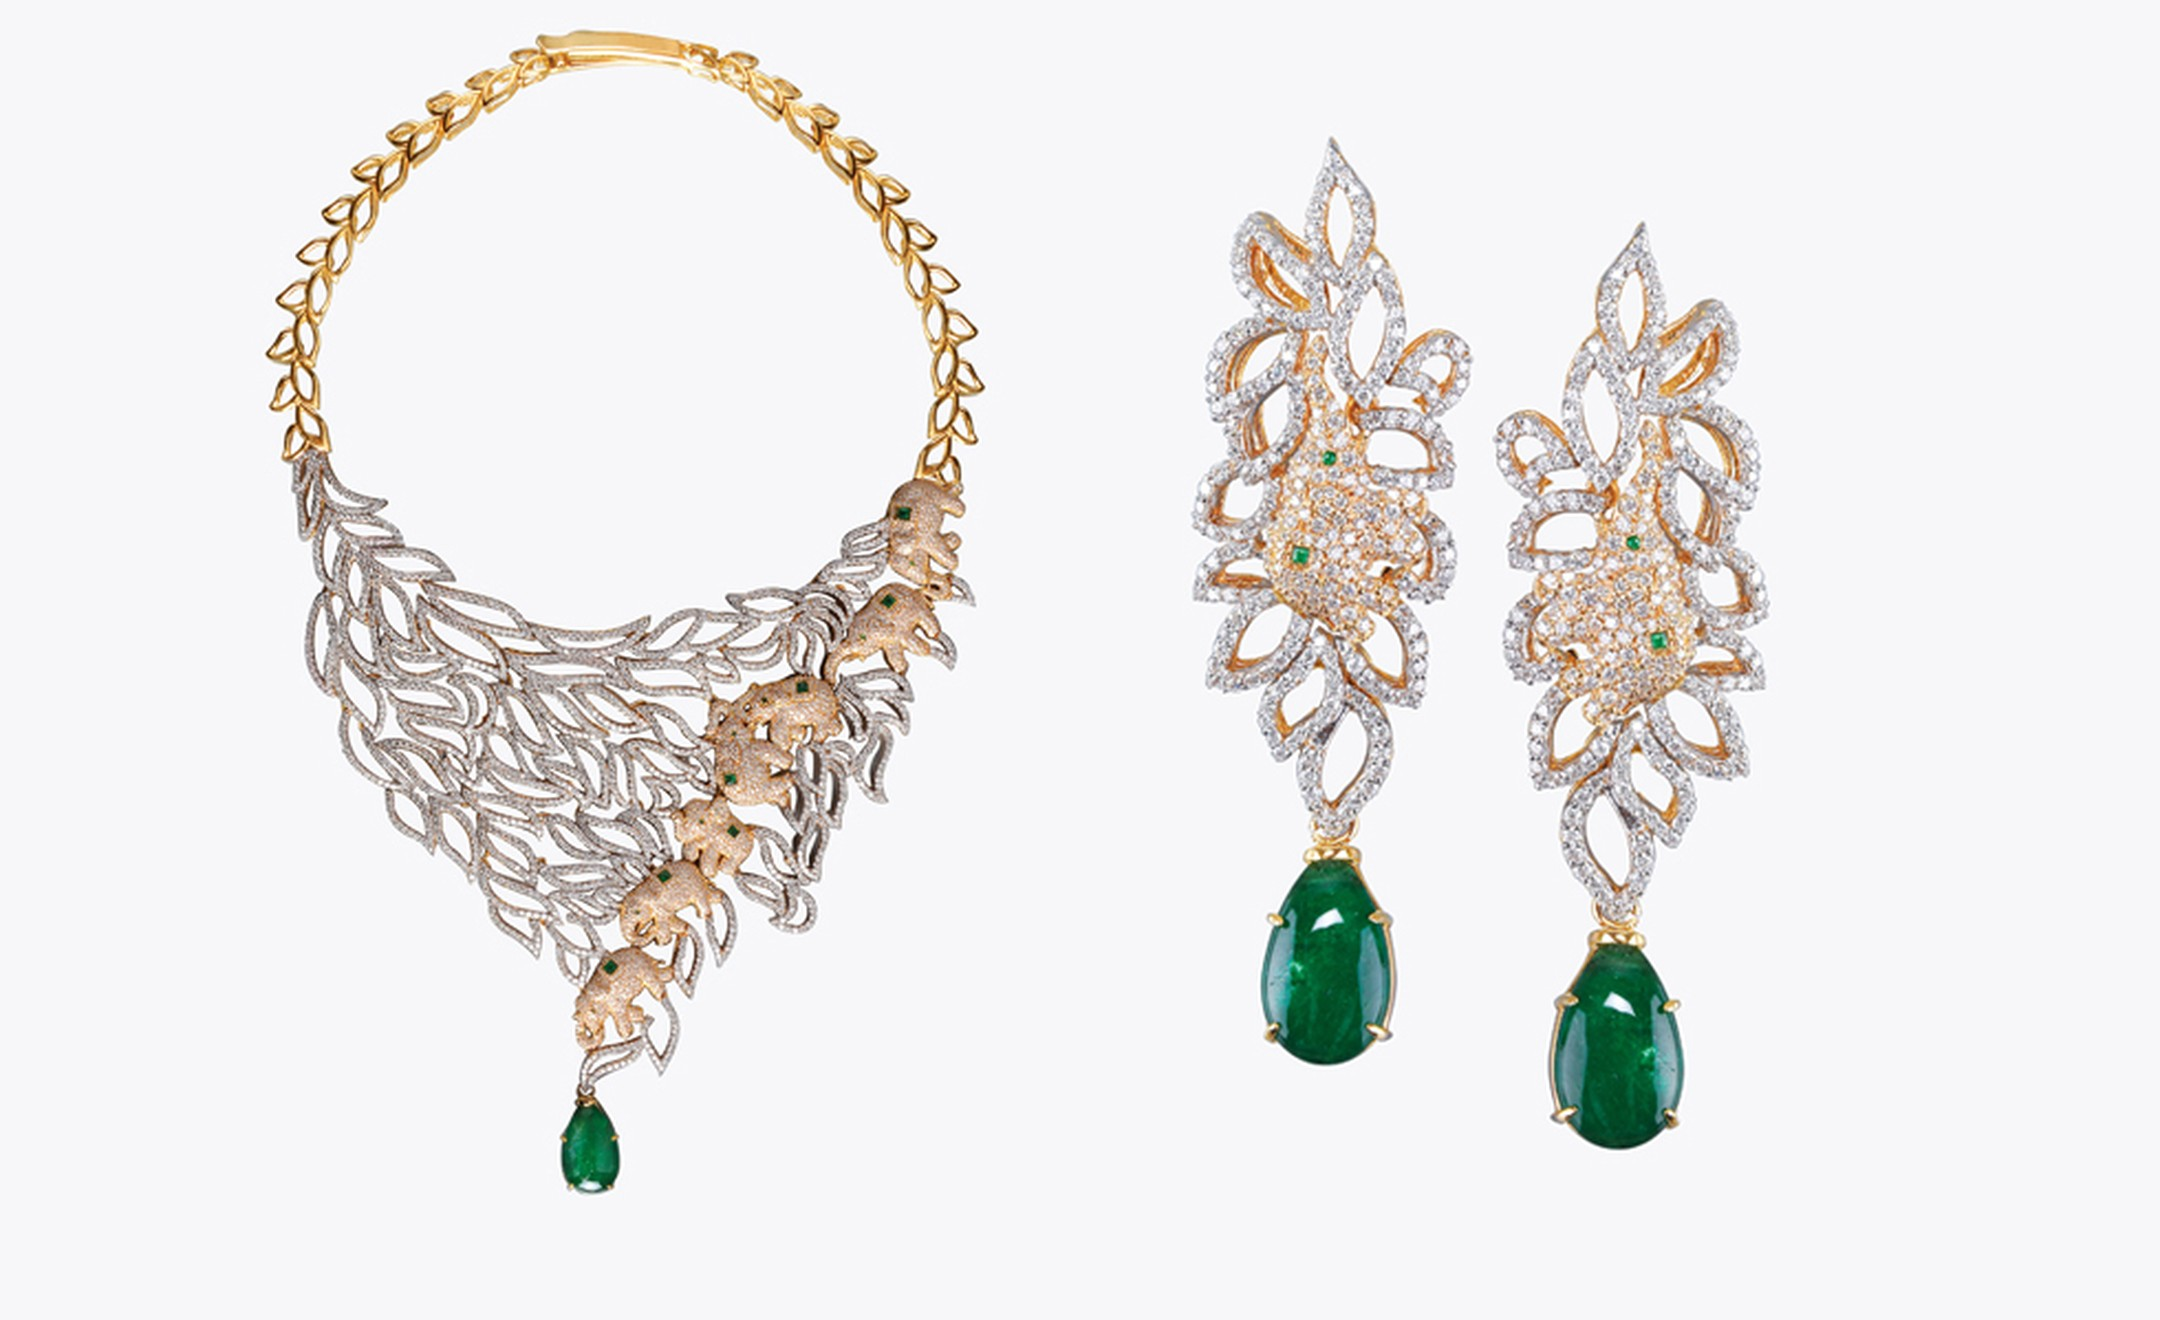 Meena, Hyderabad. Necklace and earrings, Zambian emeralds and diamonds in yellow gold. $60,000.